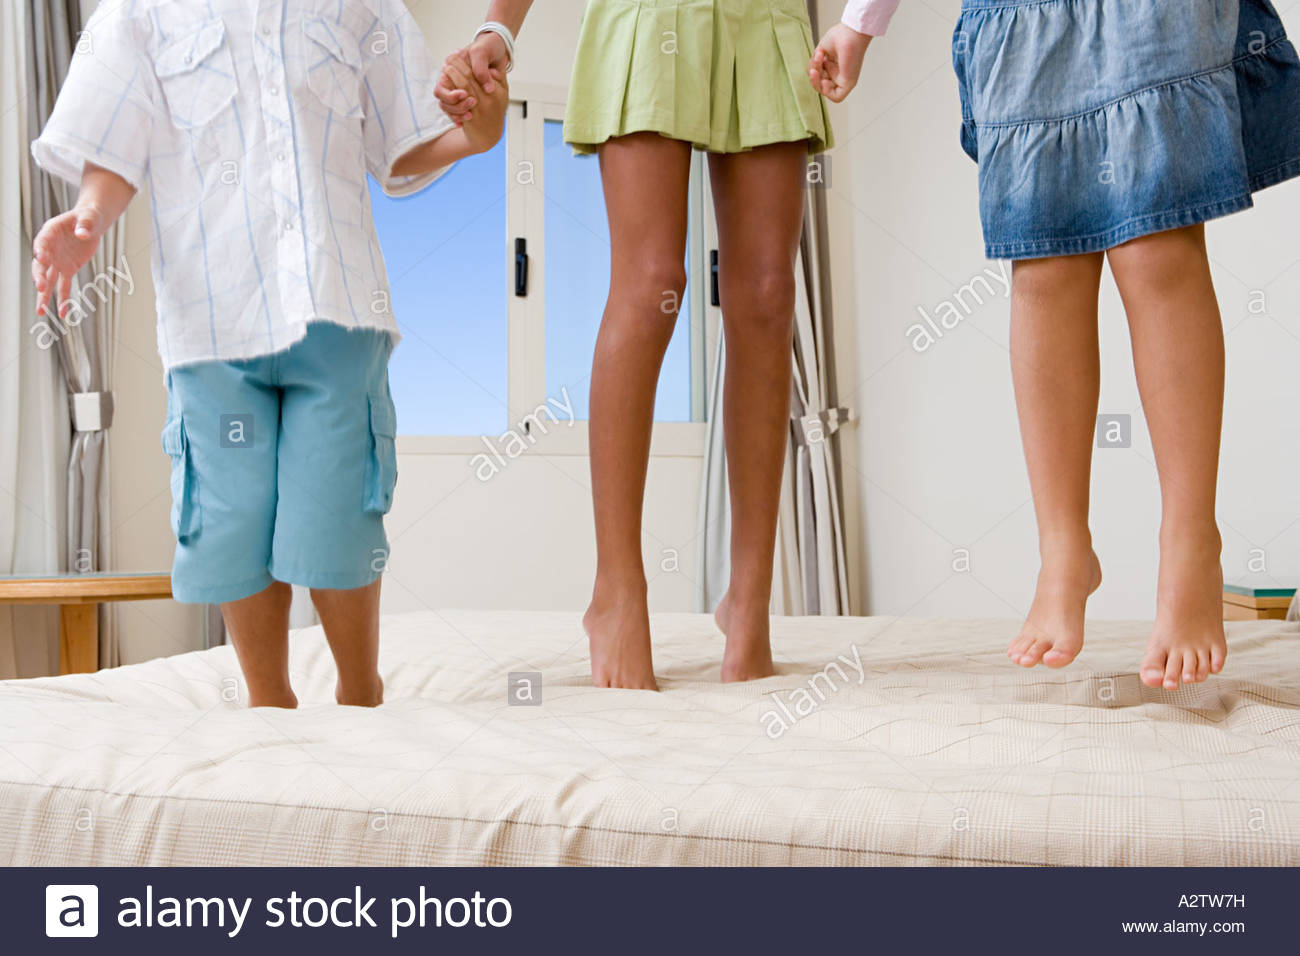 Children jumping on bed - Stock Image